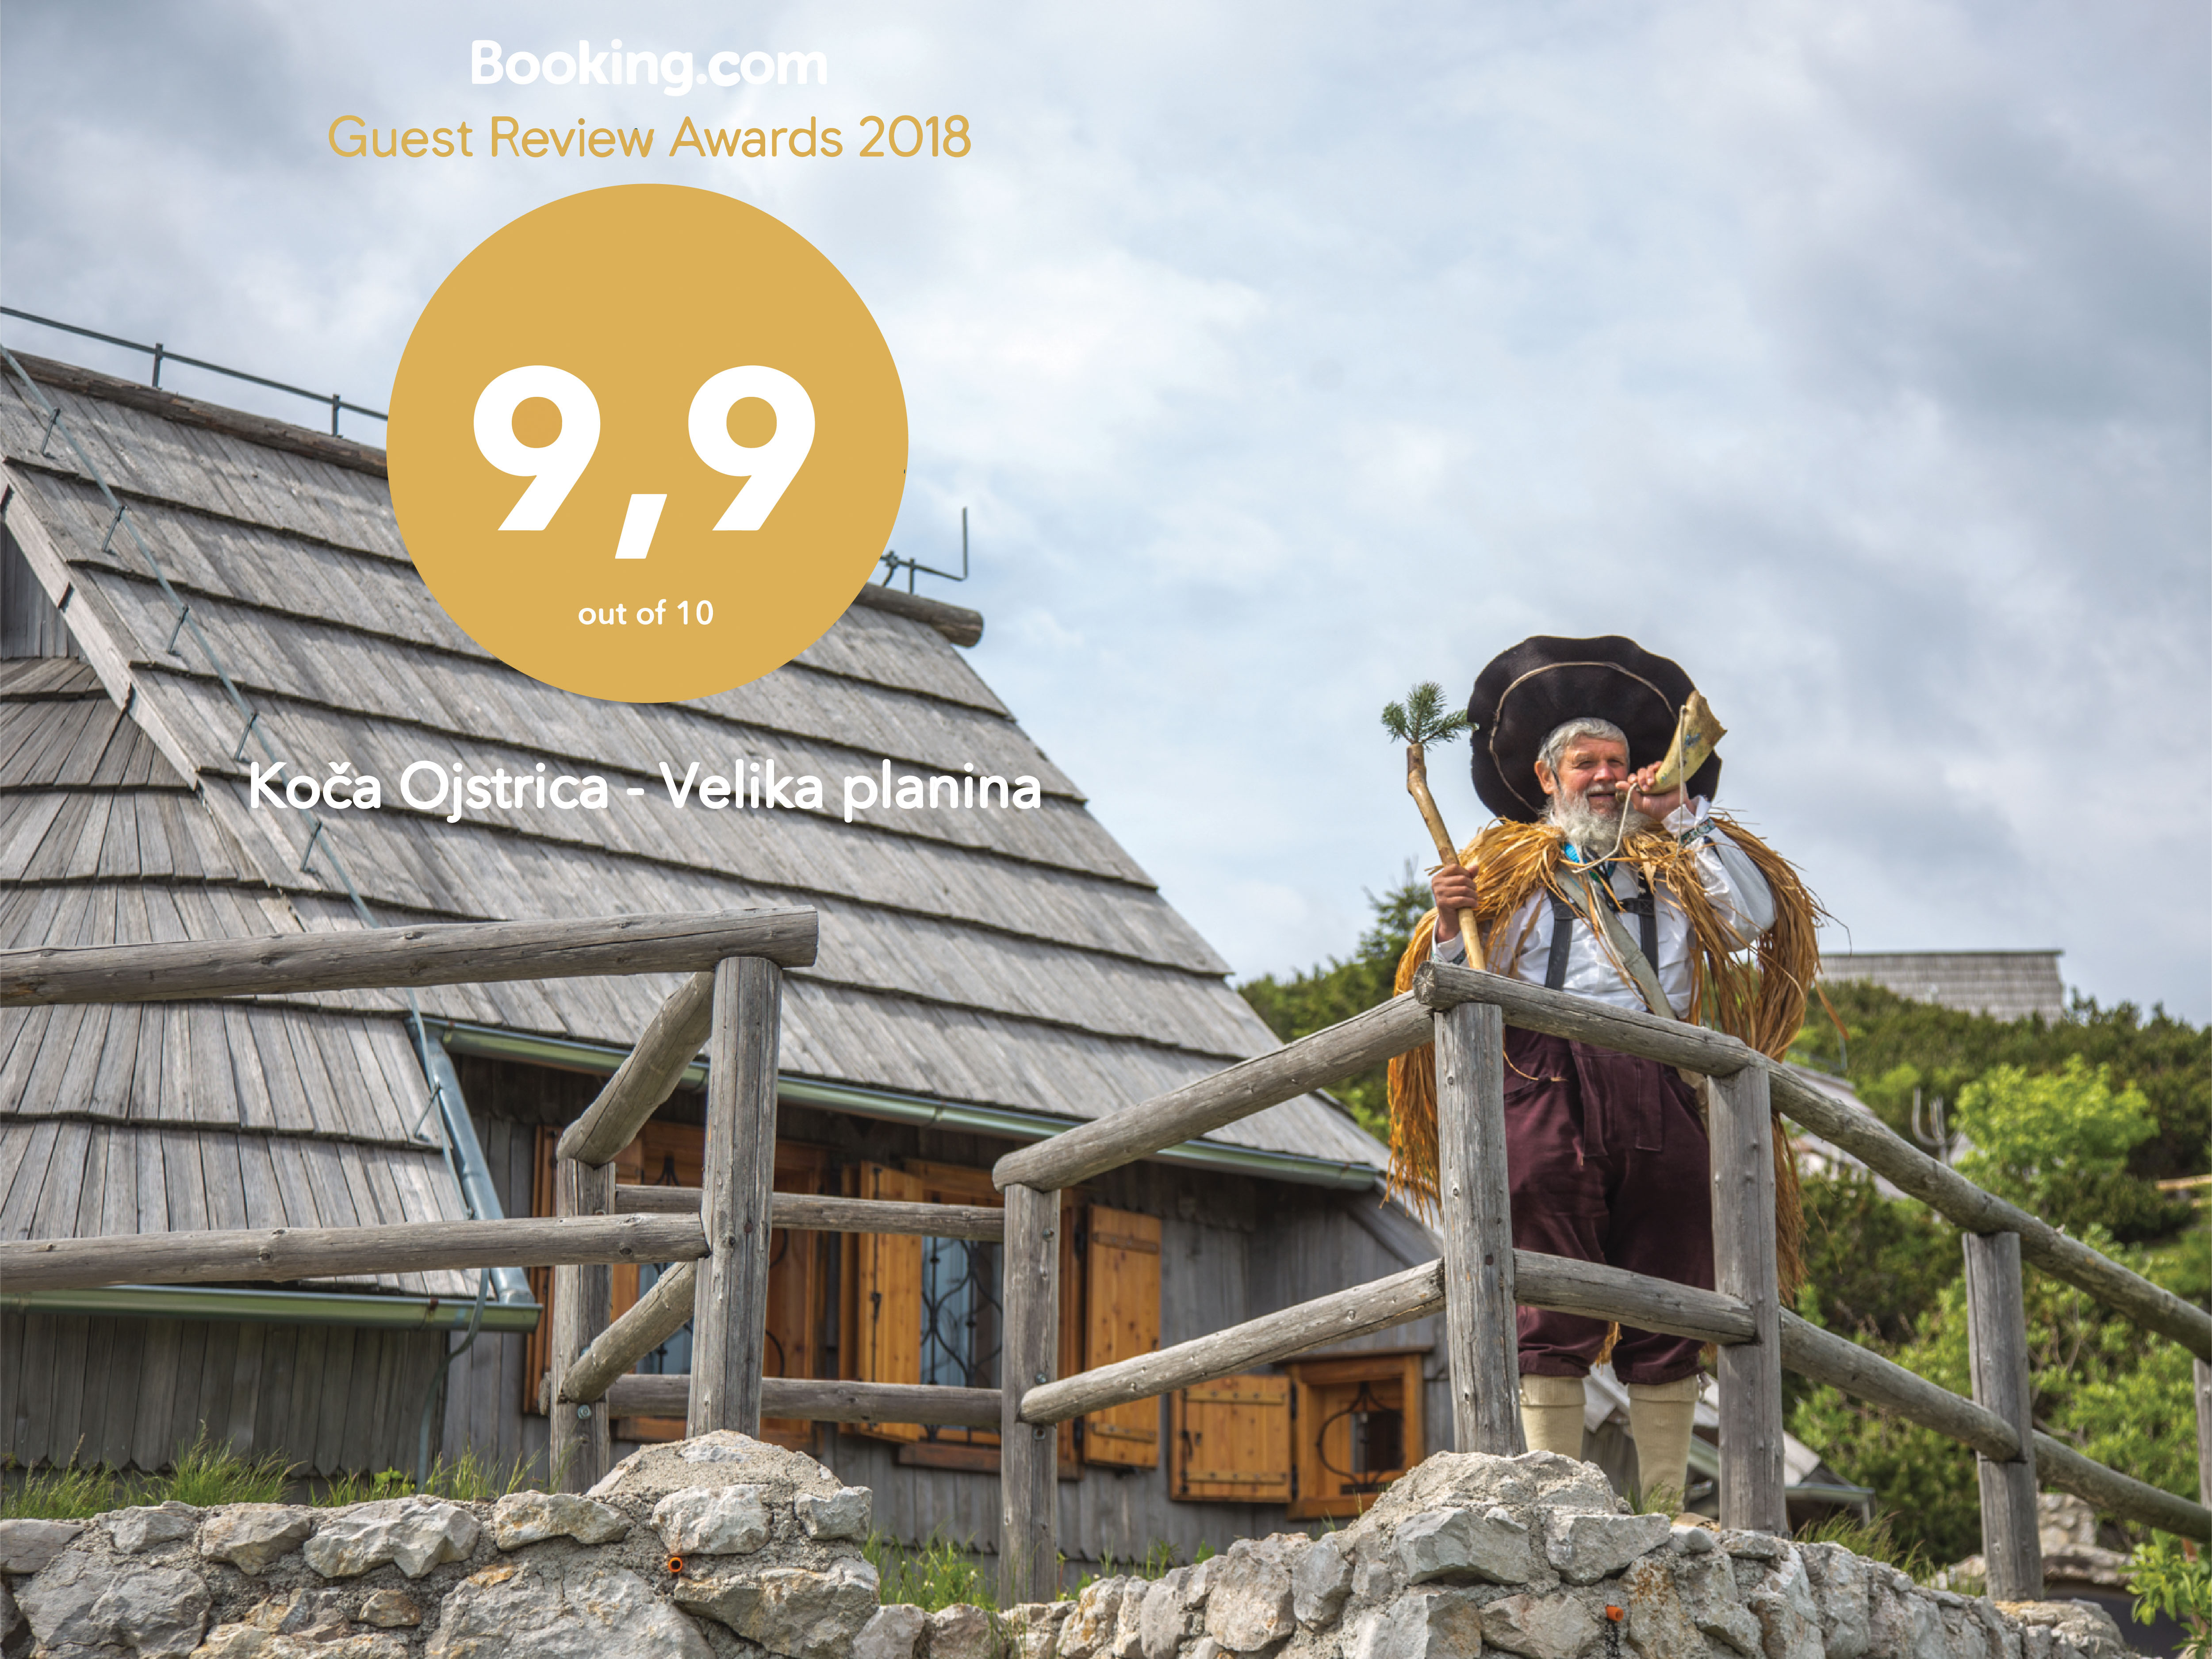 Koča Ojstrica prejela drugo leto zapored Booking Guest Award